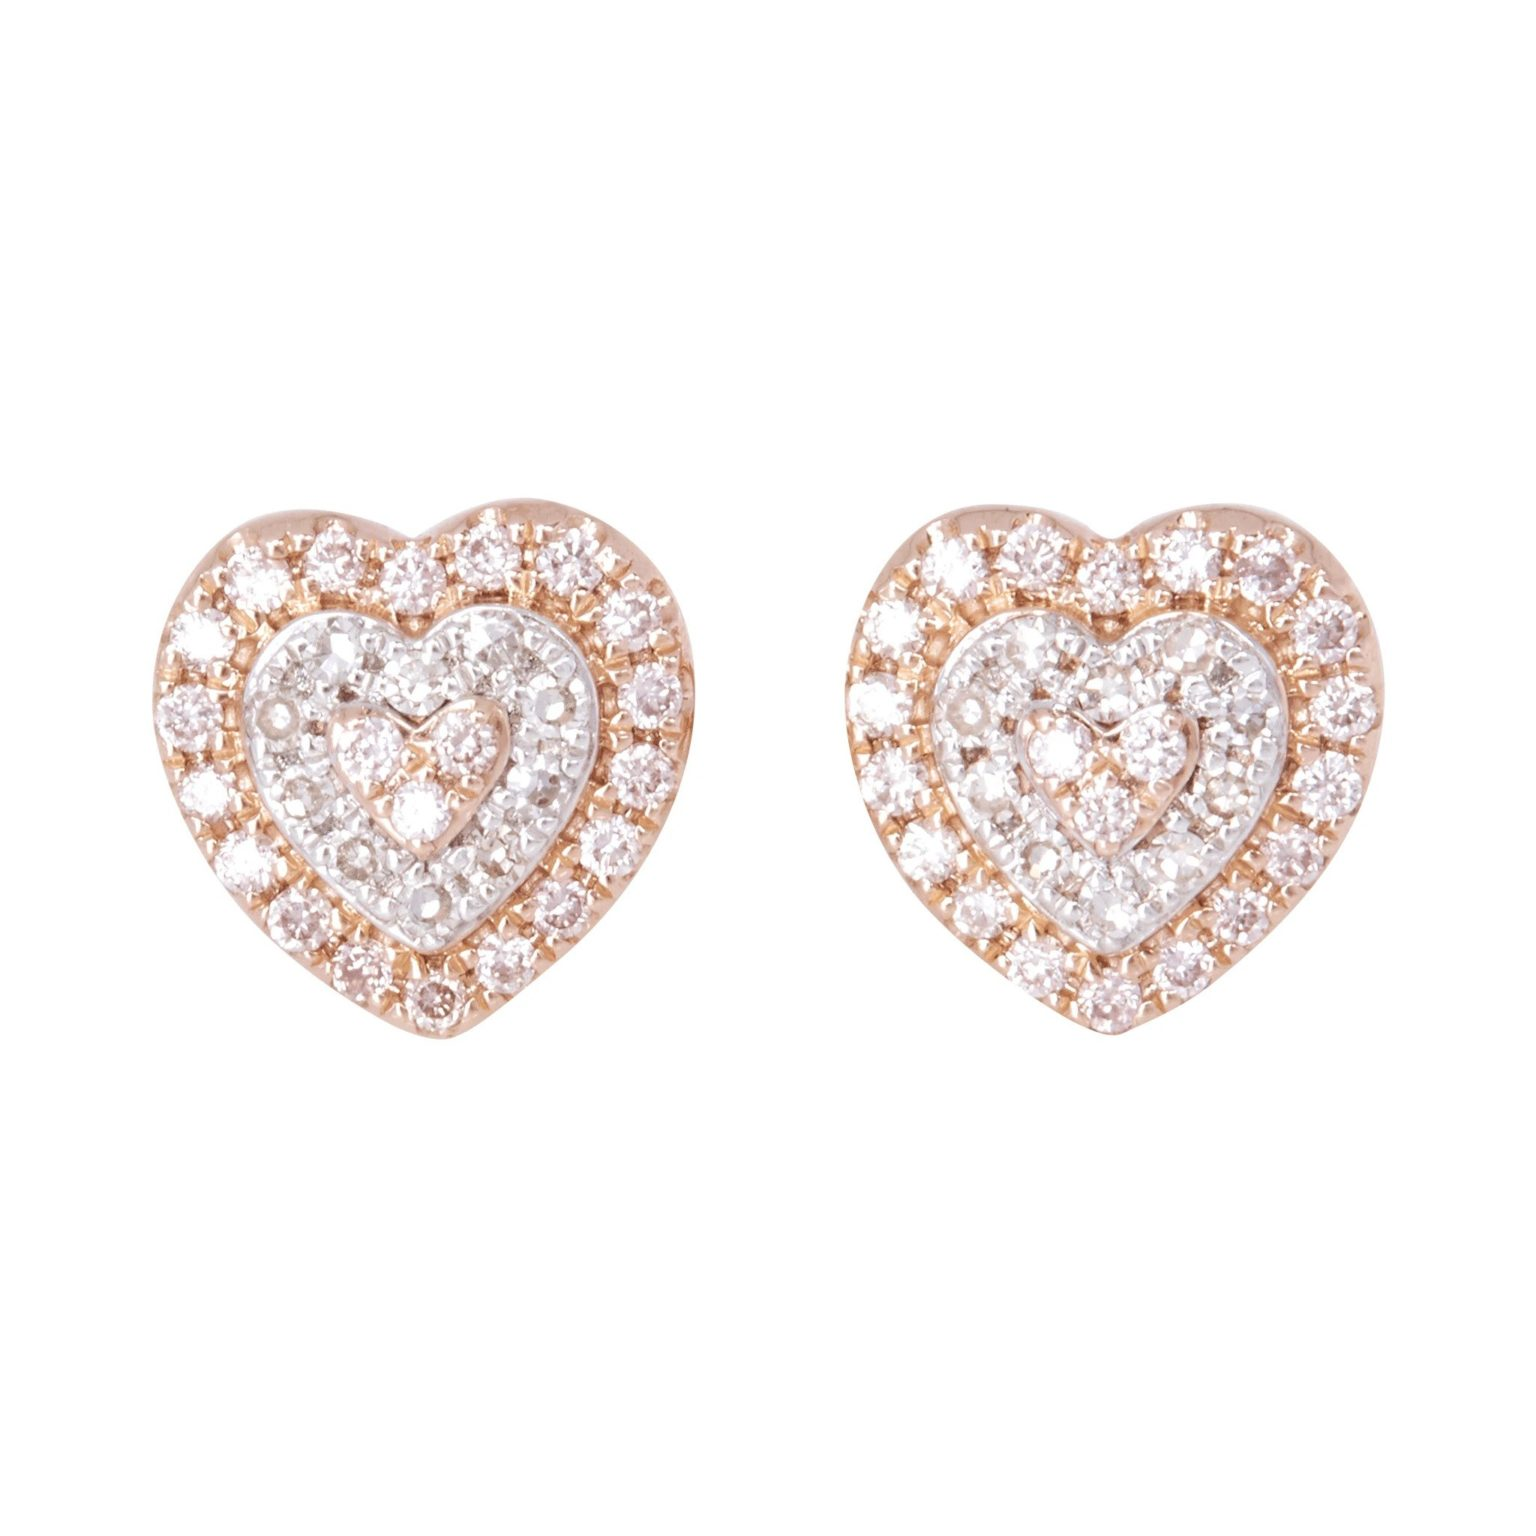 Eminence Pinks Diamond Heart Earrings